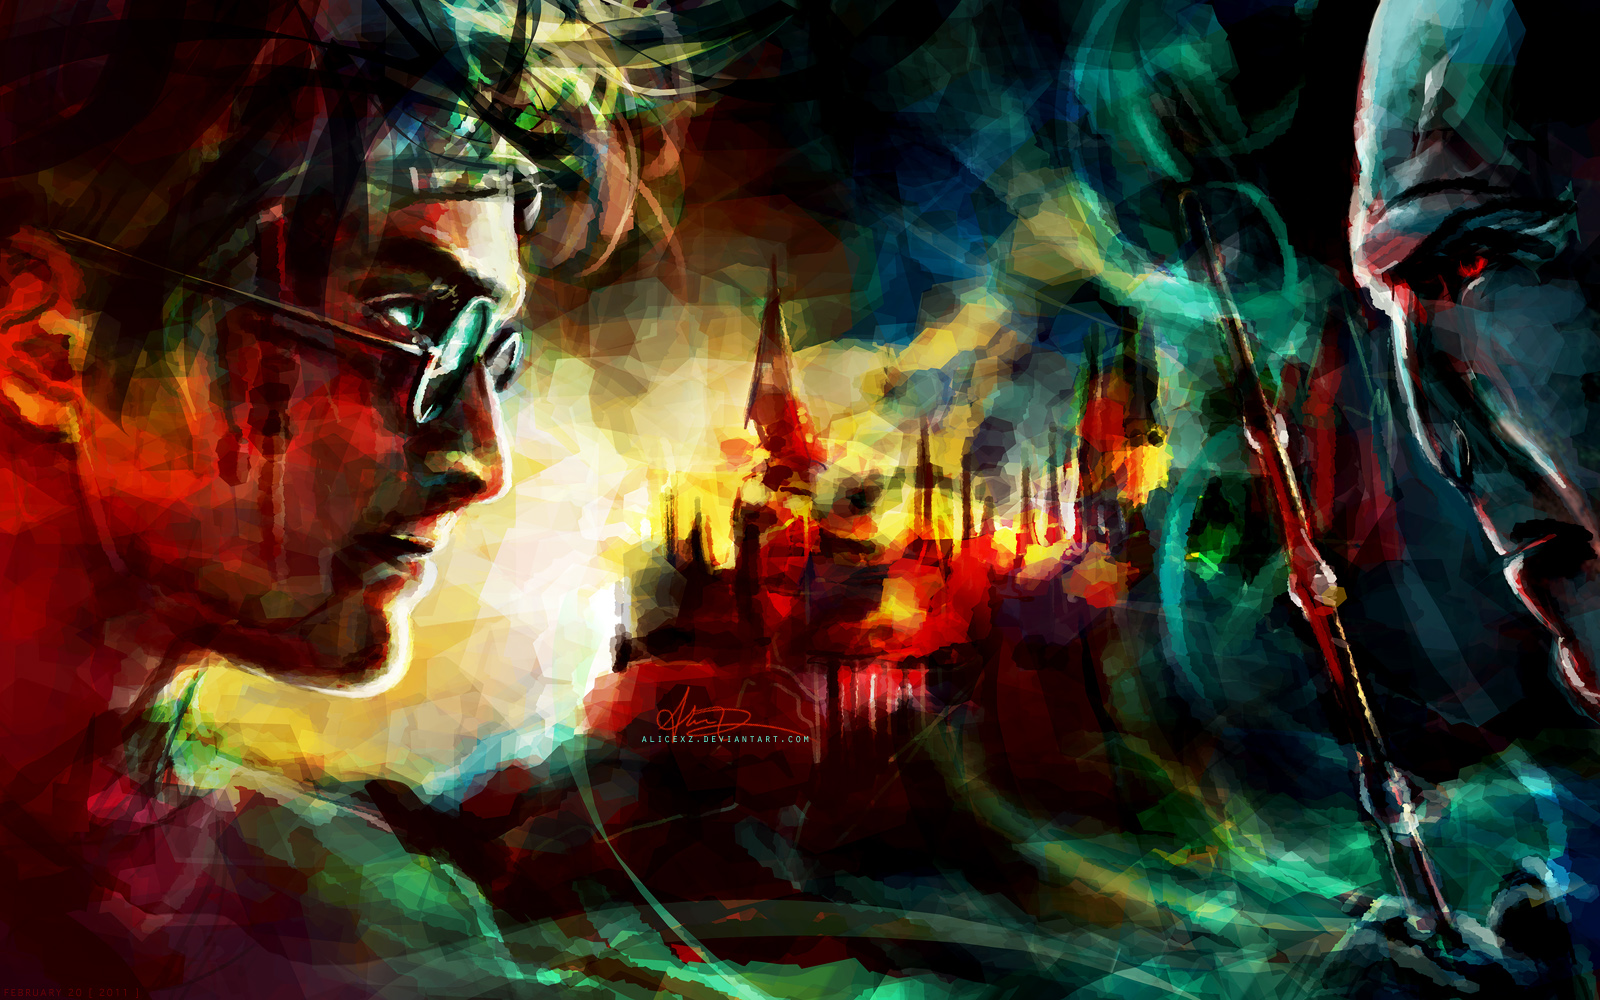 Harry Potter Art Wallpaper: It All Ends Here By Alicexz On DeviantArt